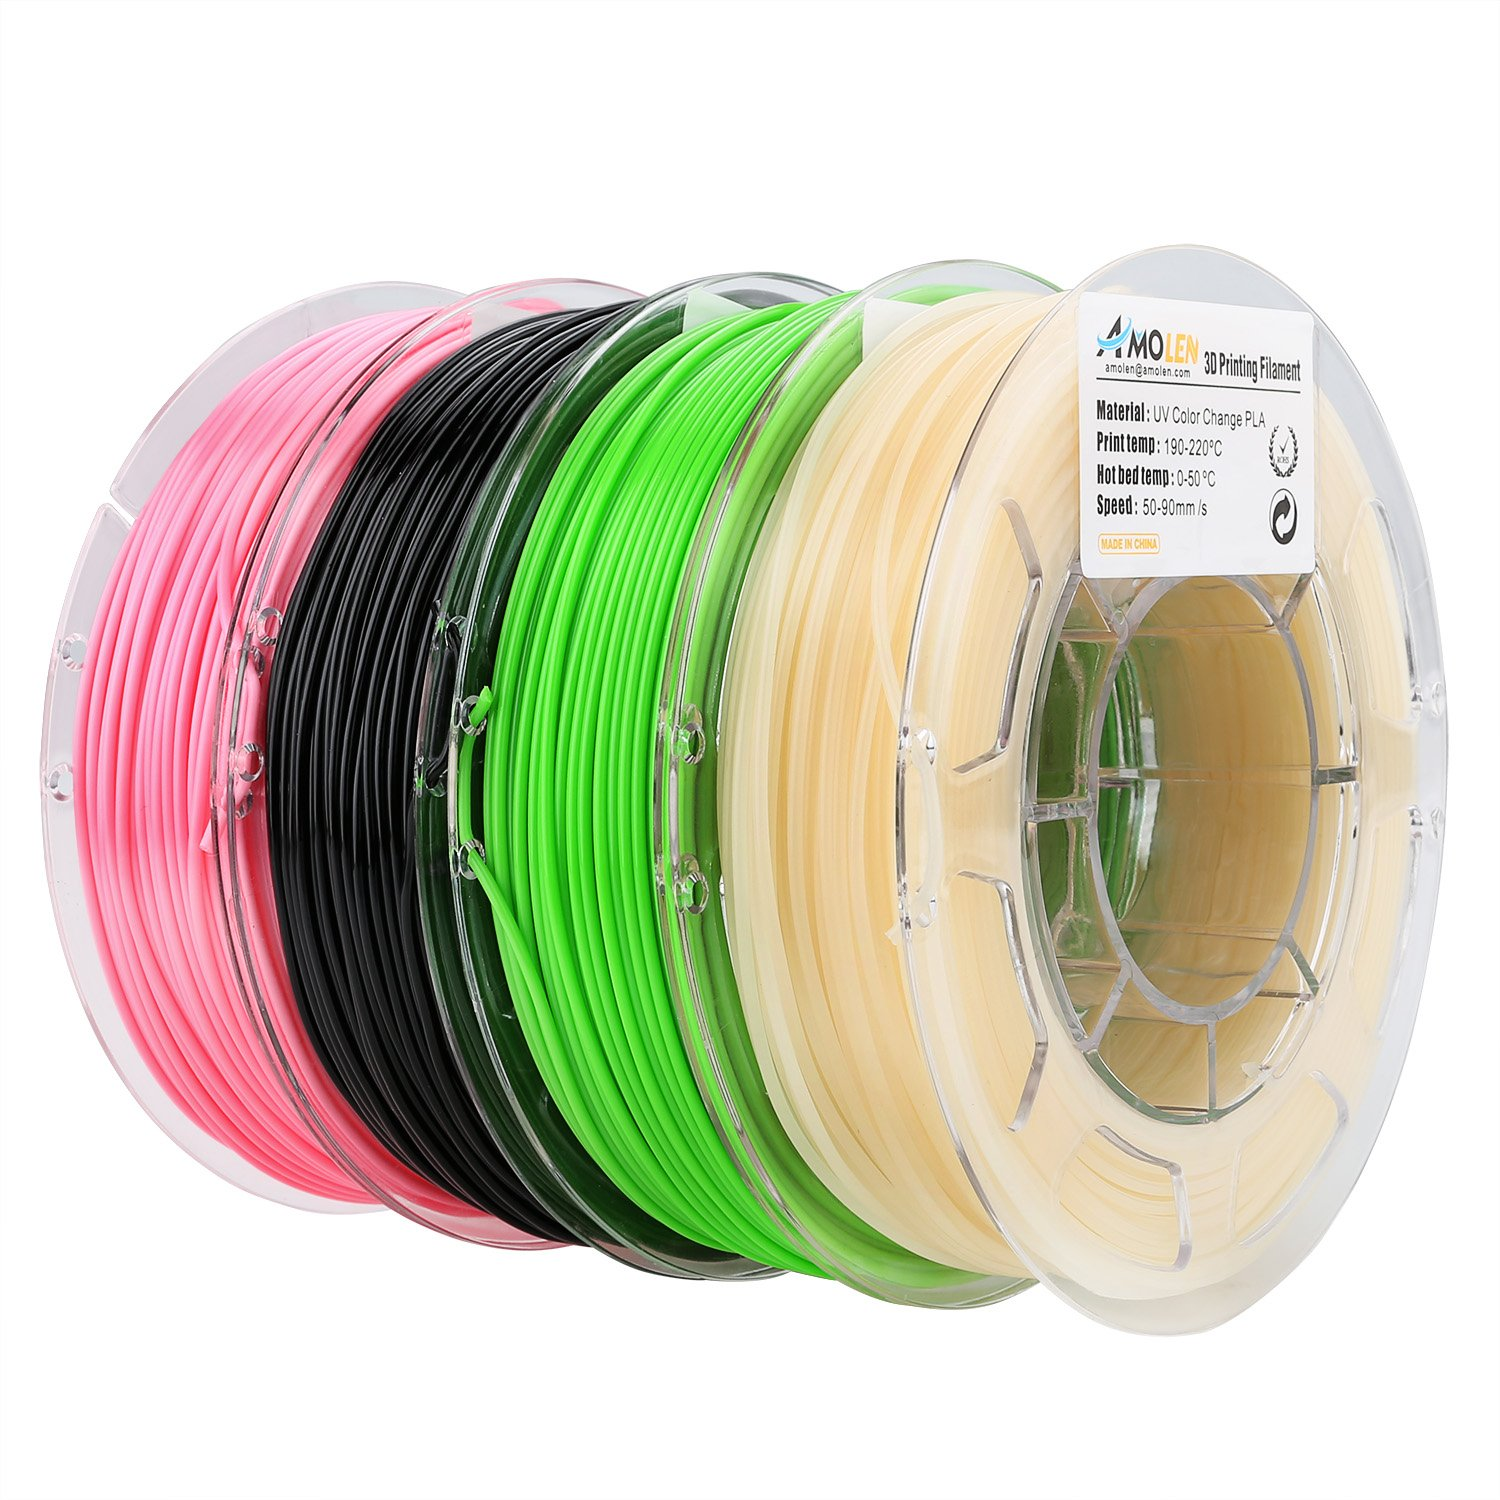 Shining Gold PLA Filament 1.75mm +//- 0.03 mm AMOLEN 3D Printer Filament Set Marble Bronze Includes Sample UV Color Change to Hot Pink and GITD Blue Filament. Wood 4x225g